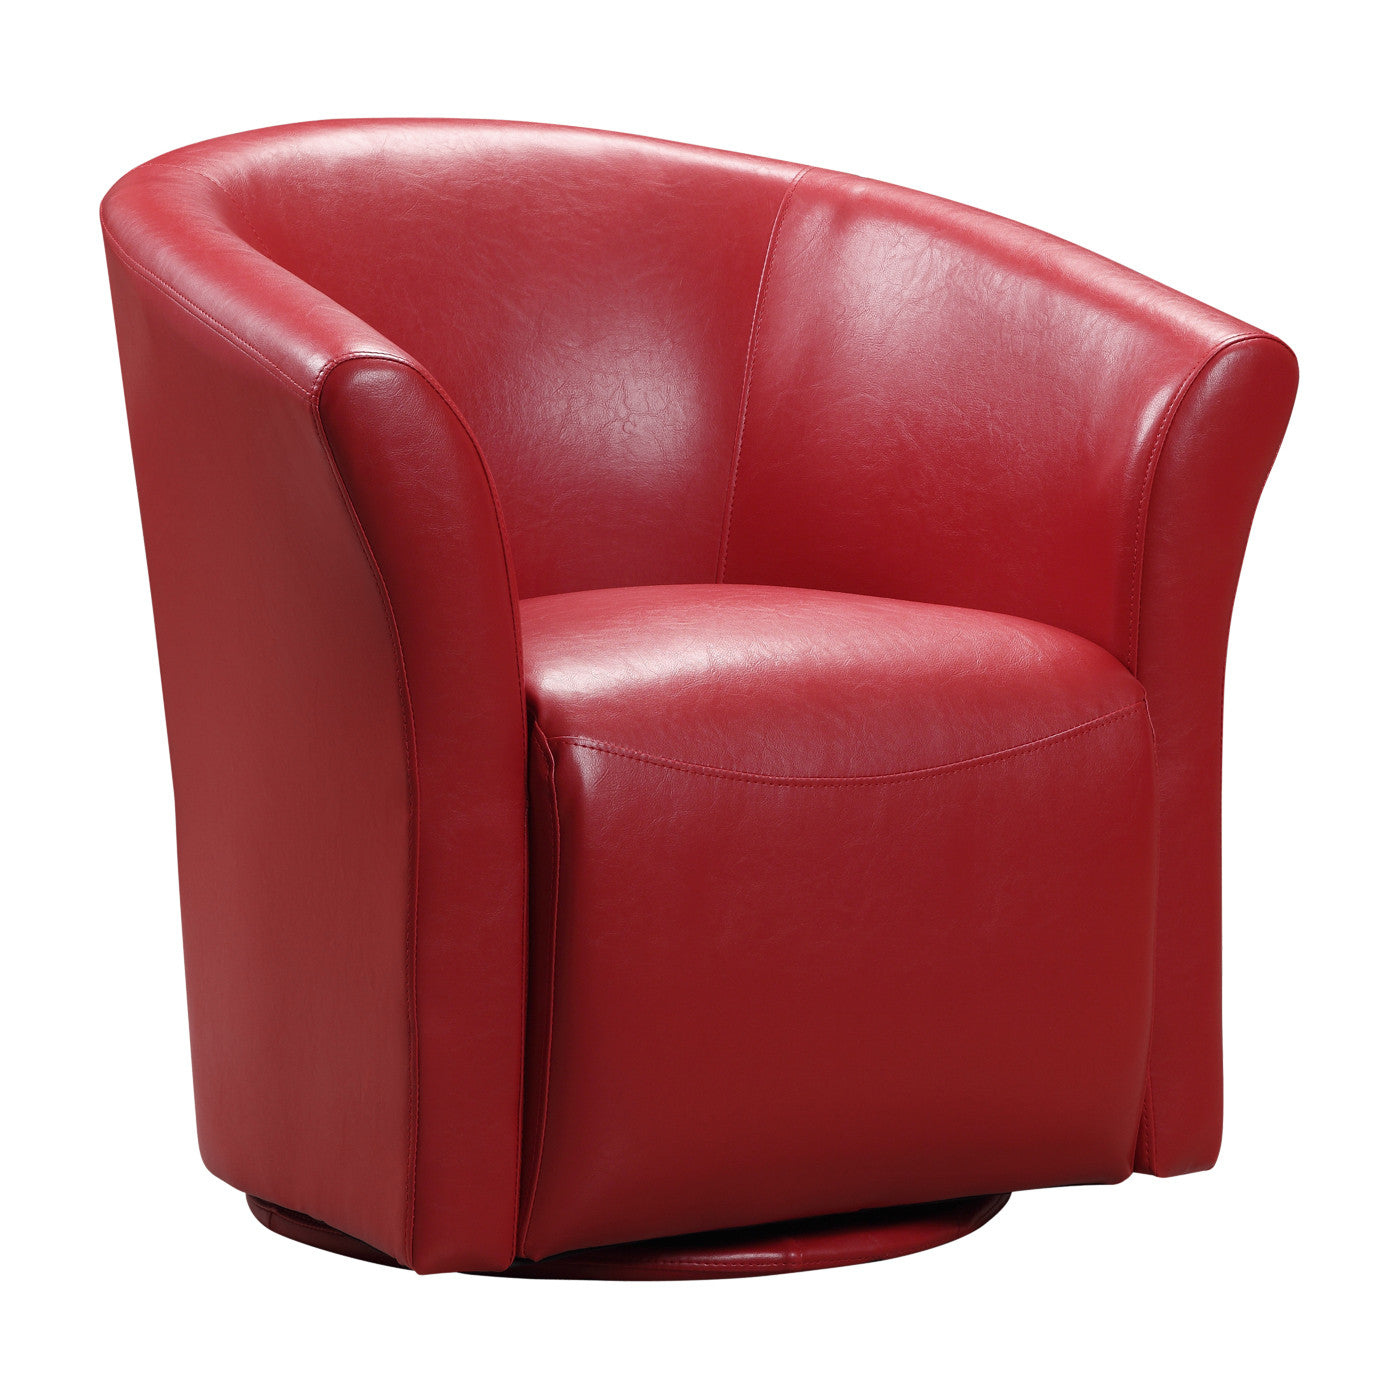 Murphy Swivel Accent Chair   RED   Apt2B. Will It Fit?